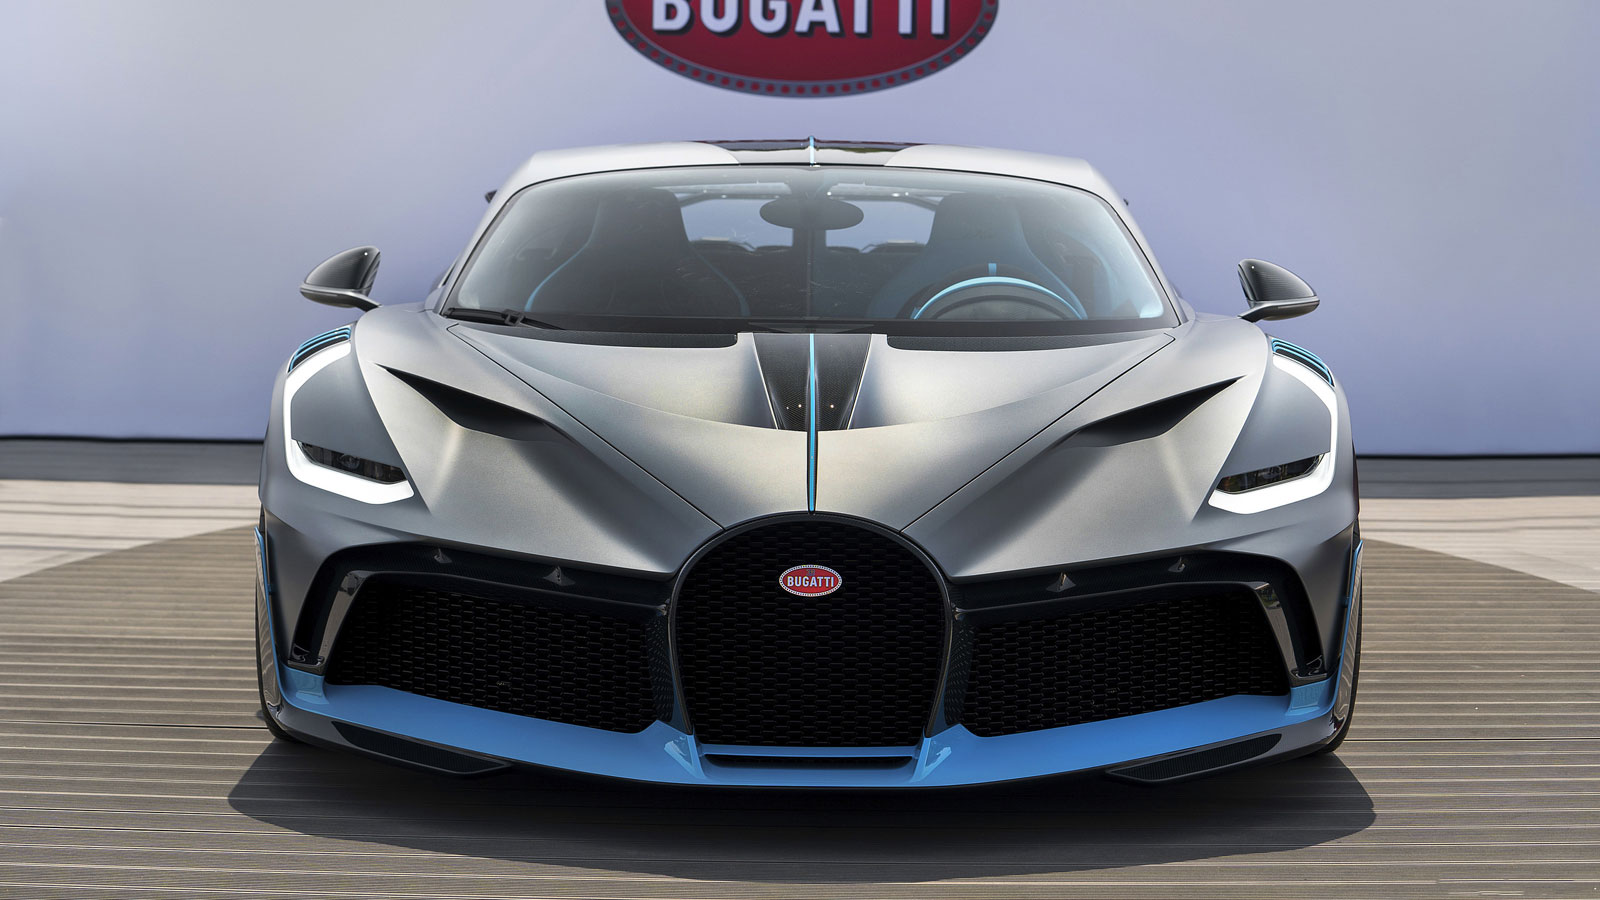 Bugatti Divo at Pebble Beach